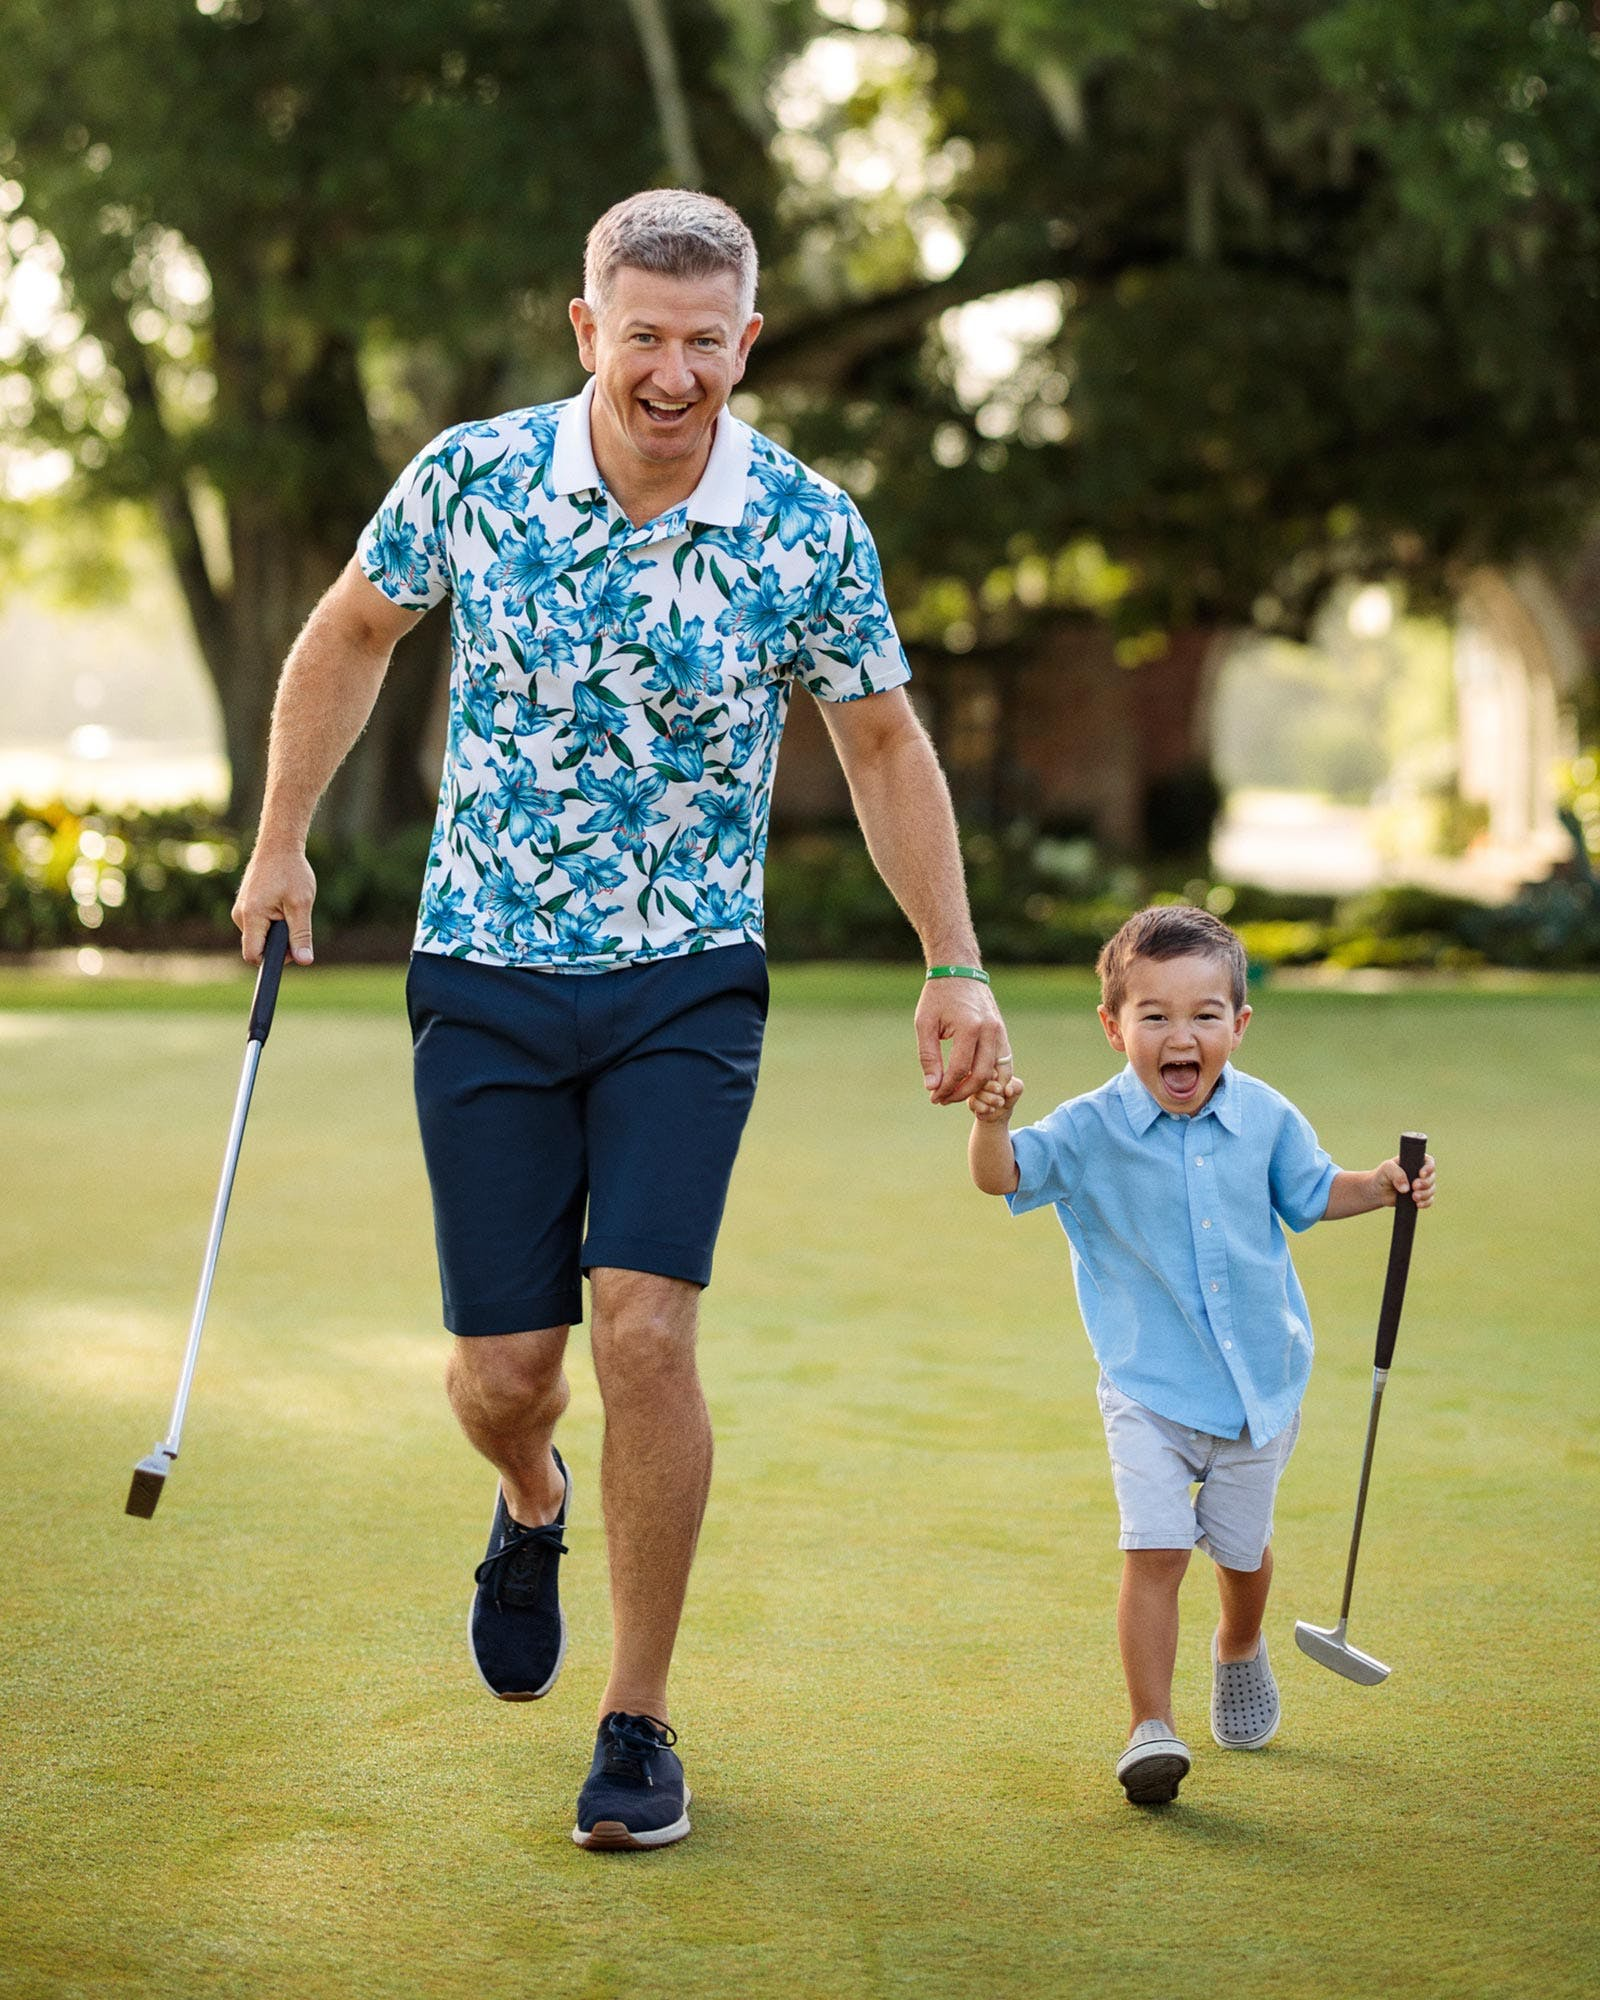 Dad and child holding golf clubs